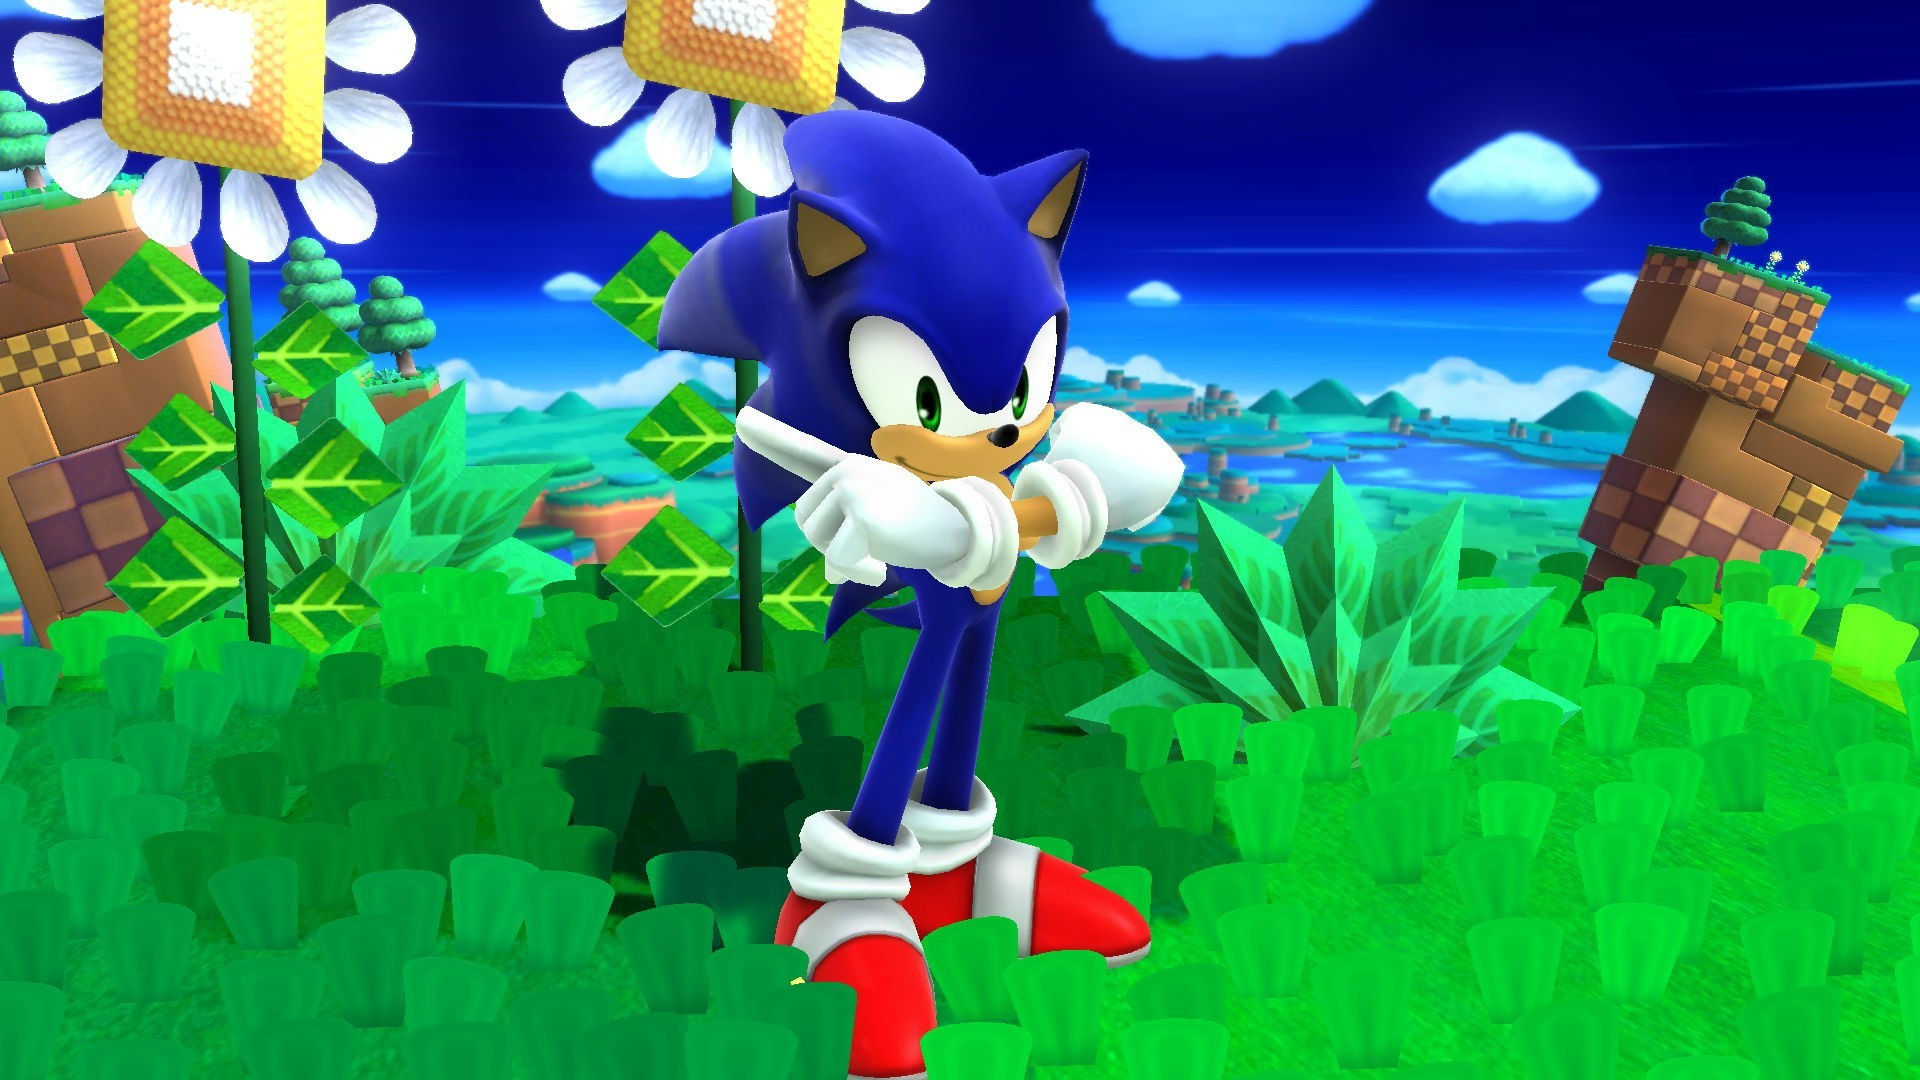 Sonic Adventure 2 Sonic Vs Shadow Green Forest